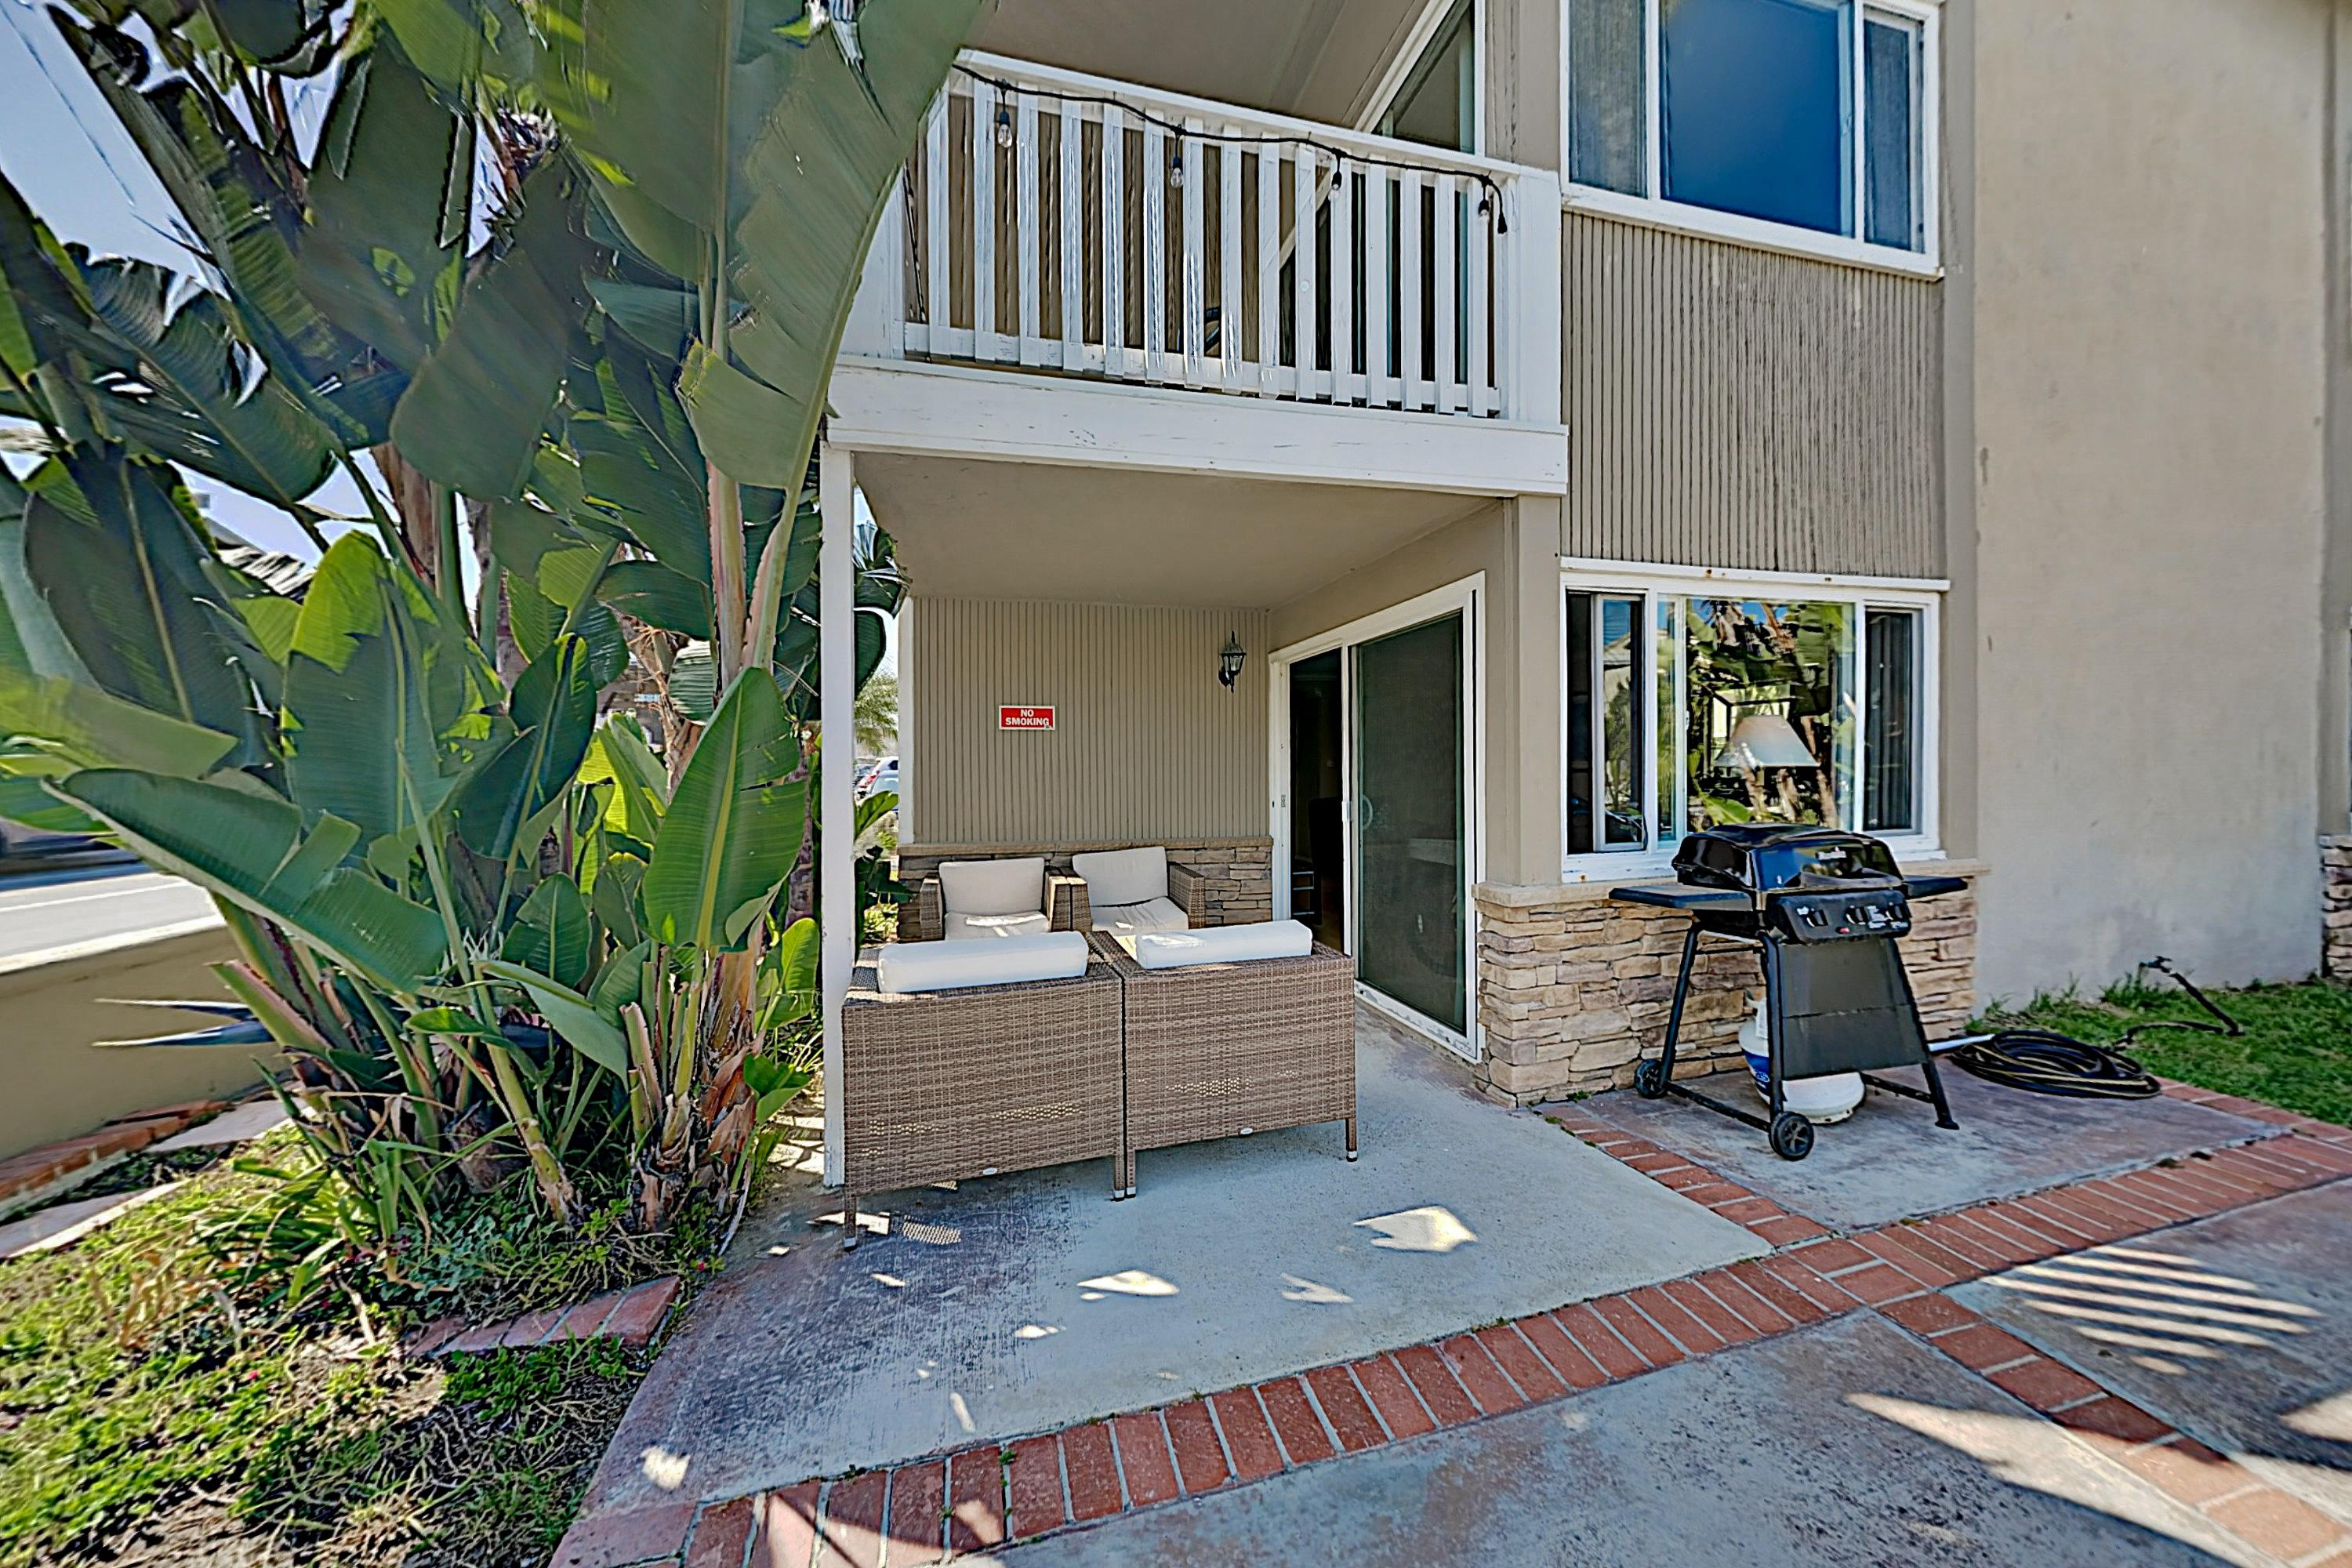 Property Image 2 - 200' to Beach! Ocean-Side Duplex w/ Yard & Grill